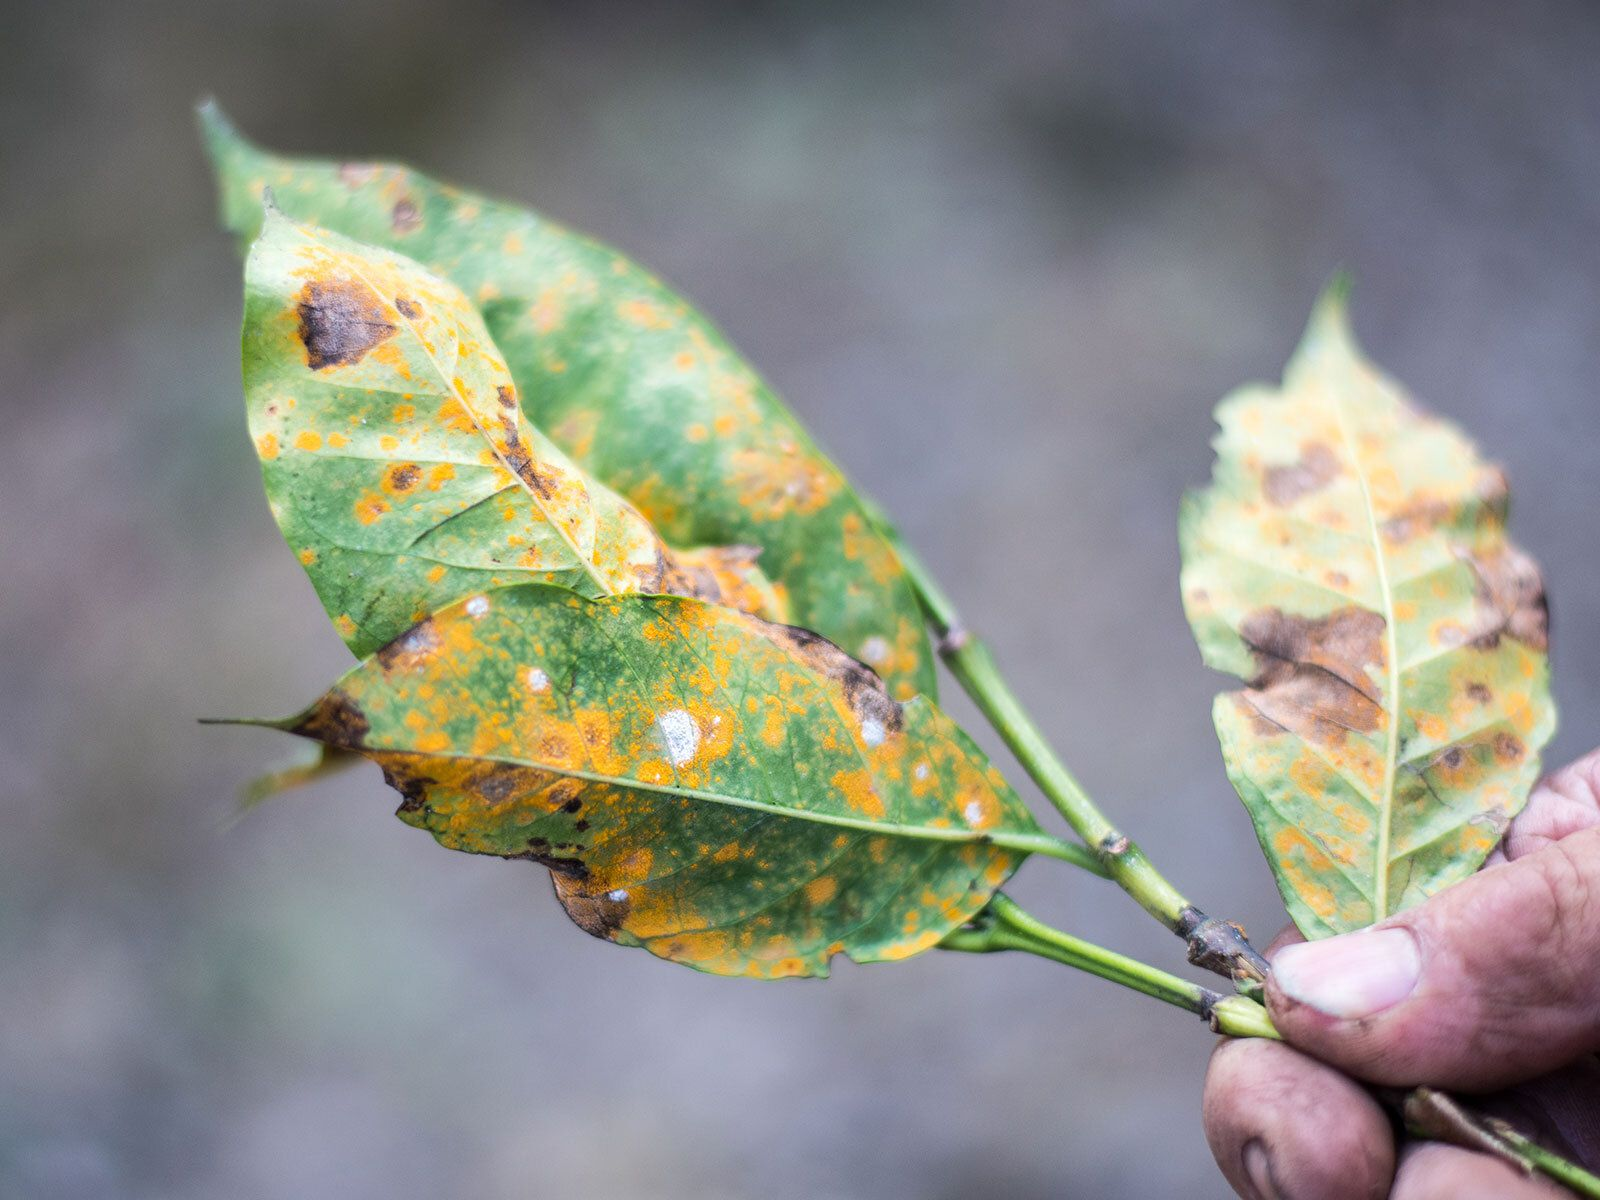 New Study Shows Climate Change May Increase the Spread of Plant Pathogens